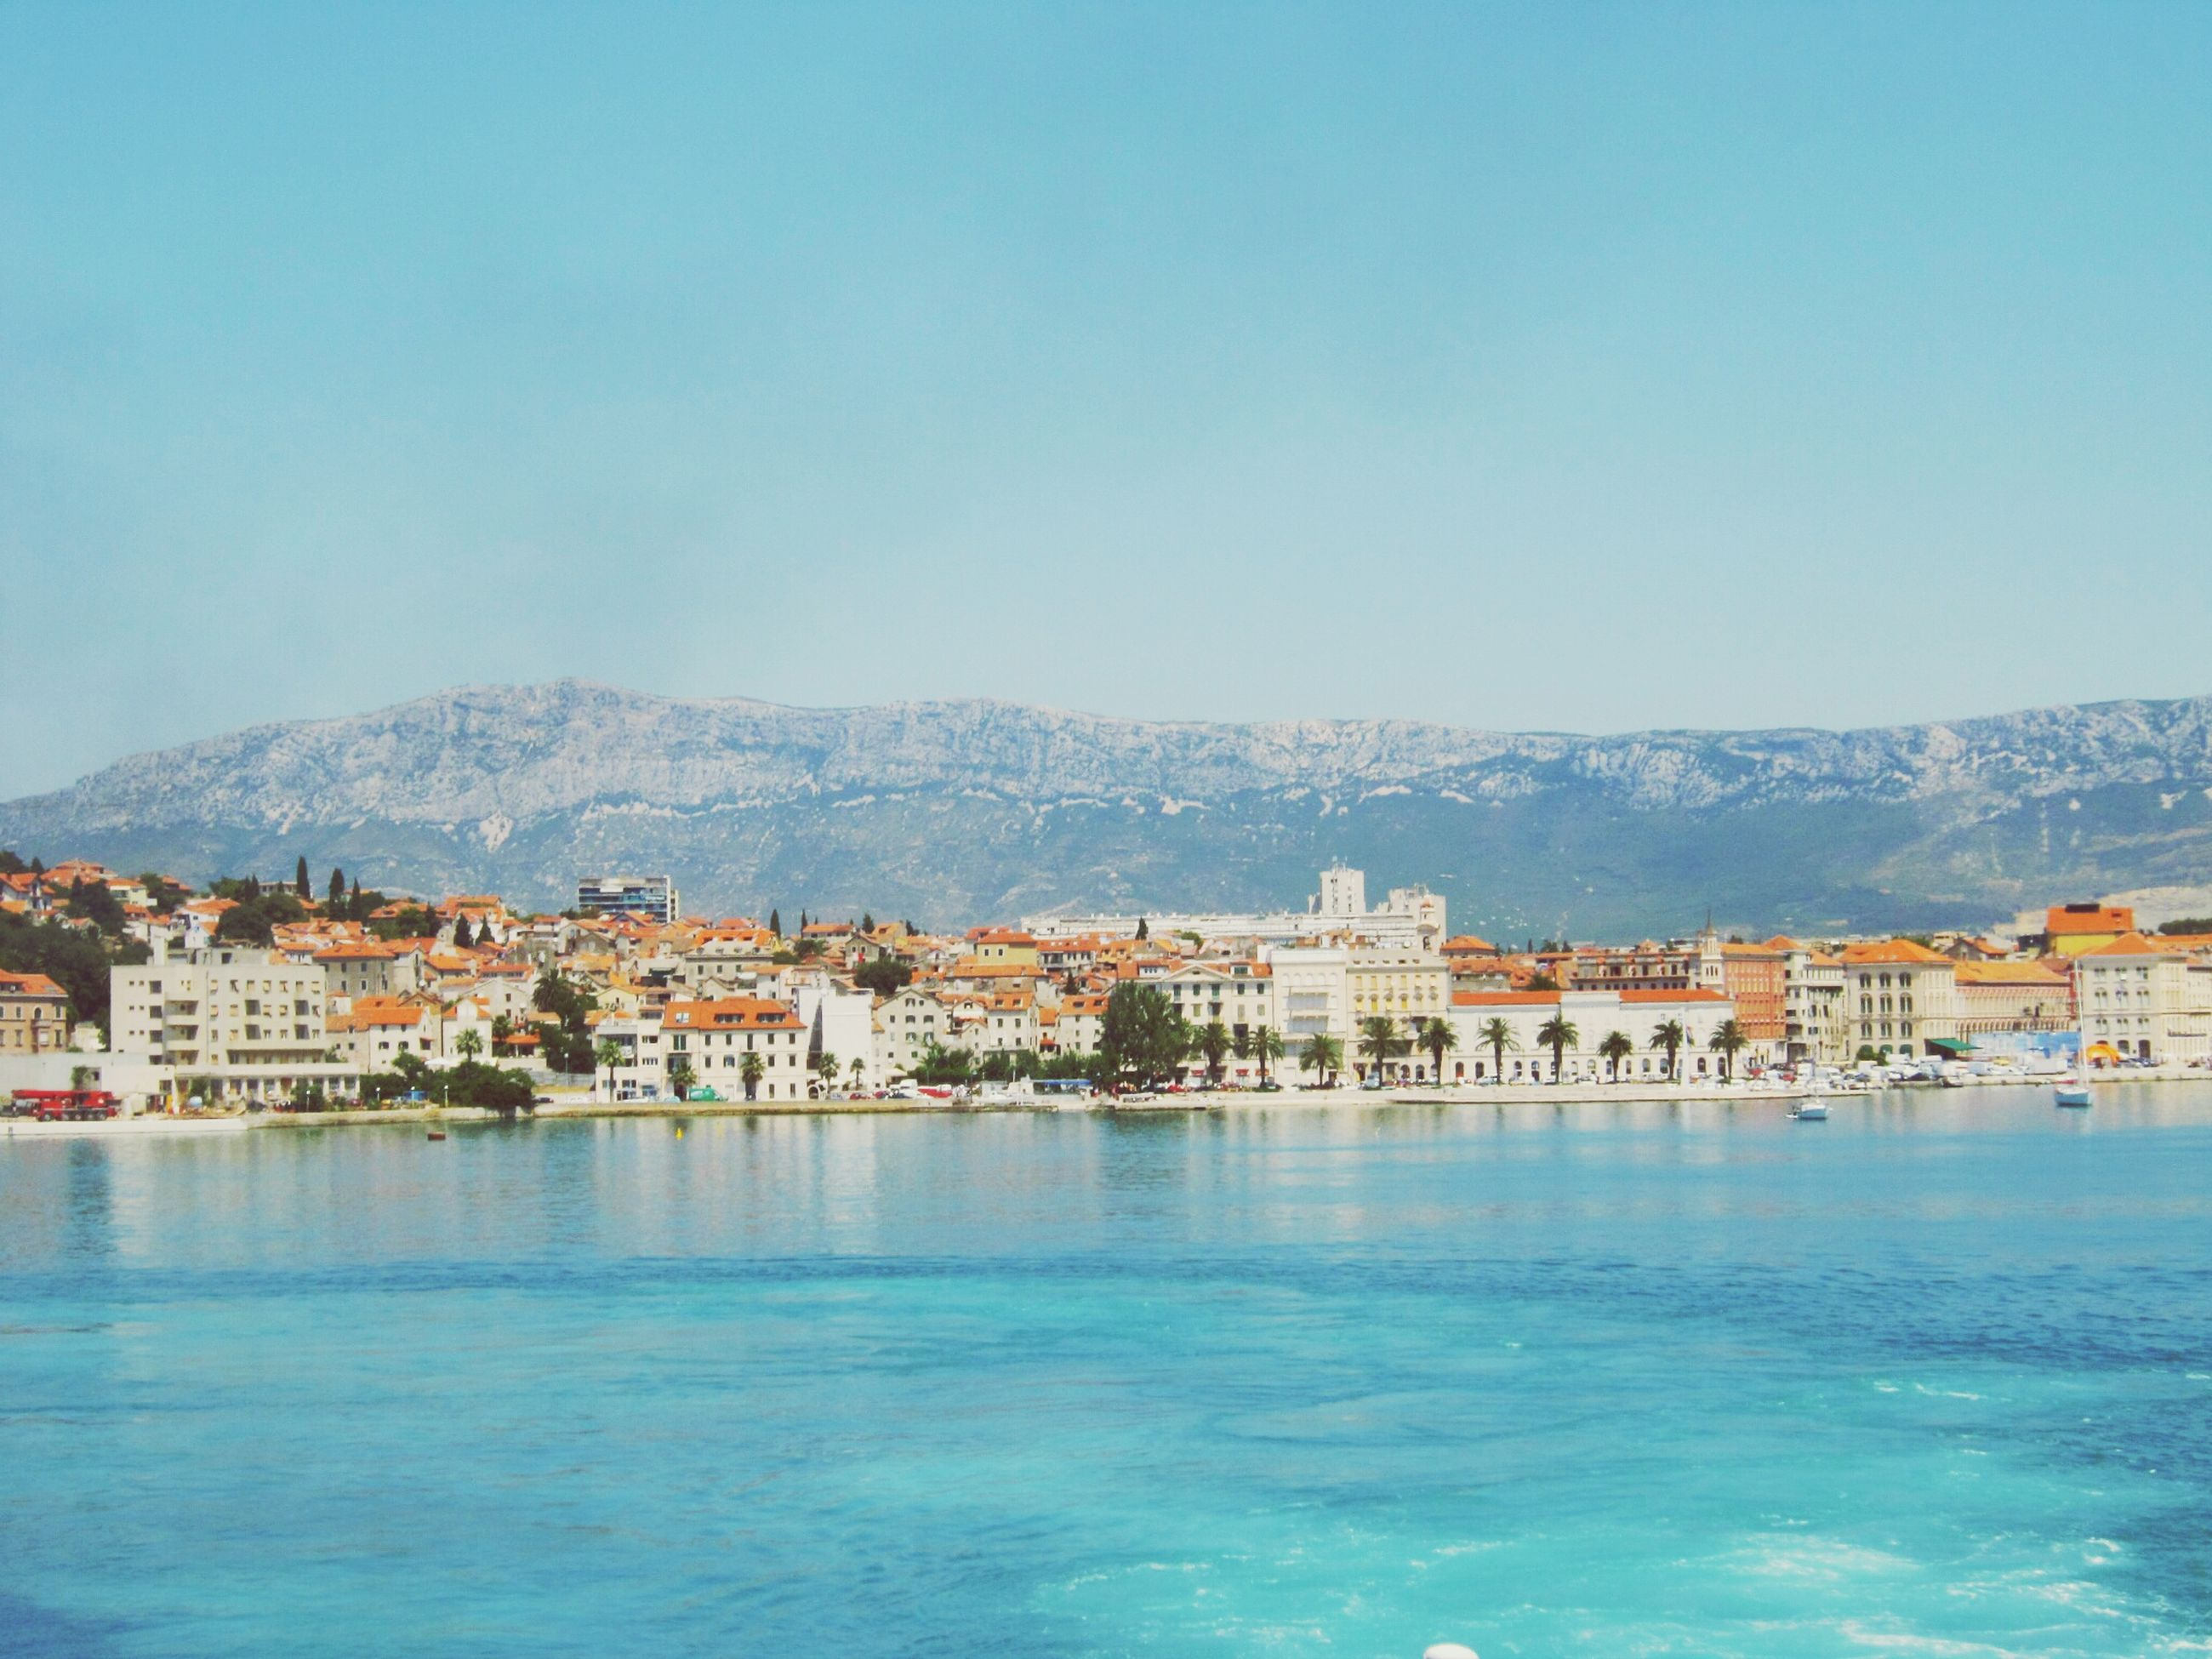 water, building exterior, architecture, built structure, clear sky, blue, waterfront, copy space, mountain, sea, house, residential structure, residential building, town, residential district, scenics, day, nature, tranquil scene, tranquility